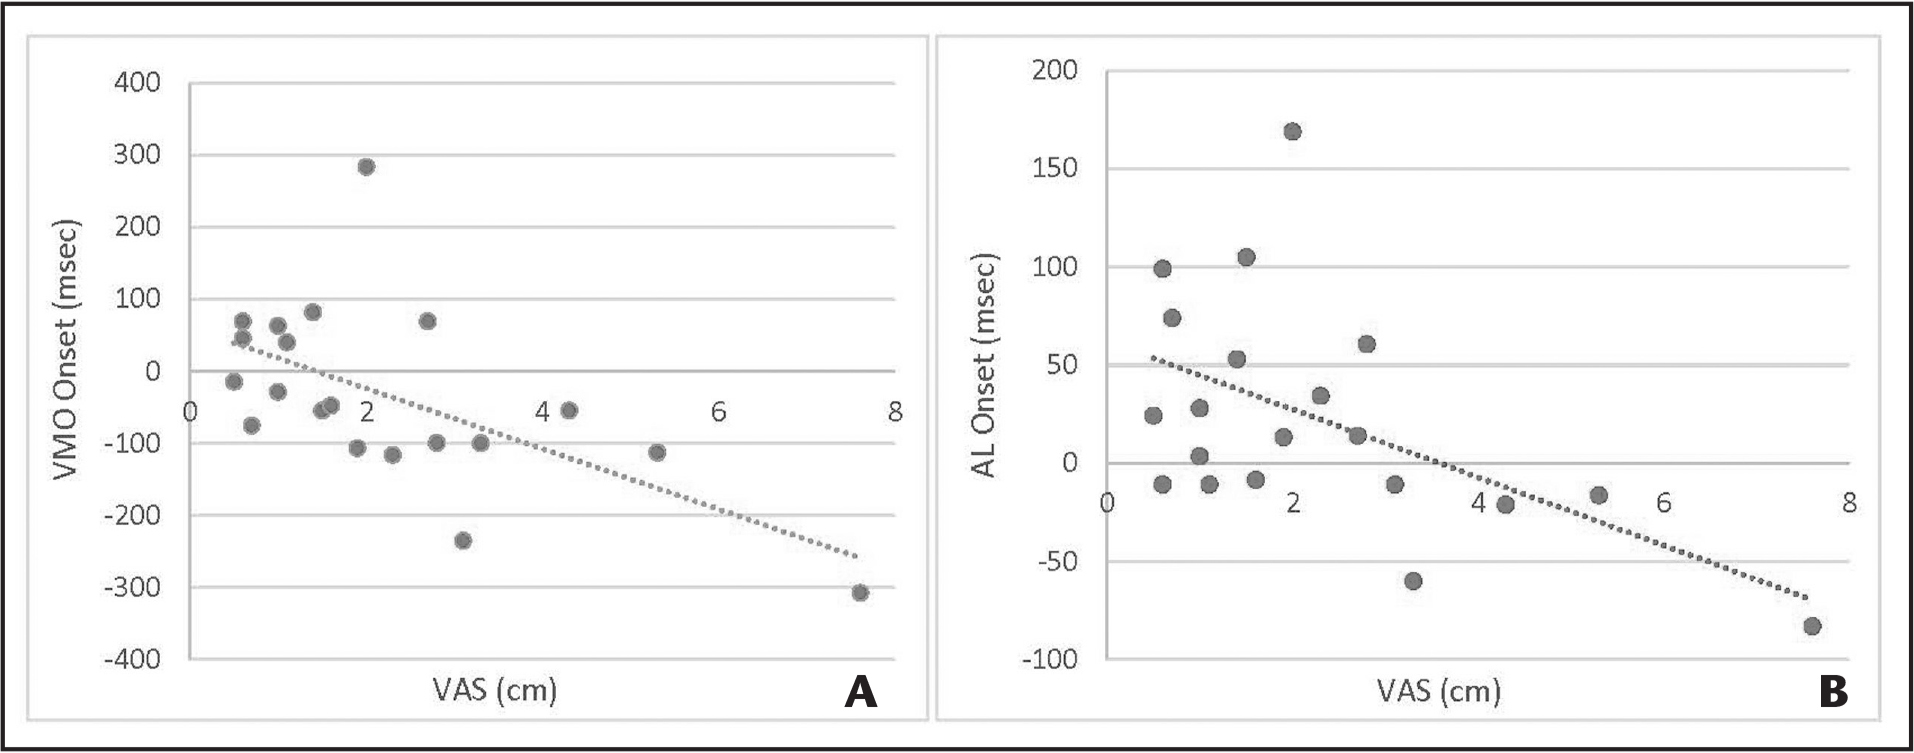 Scatterplots of statistically significant associations between visual analog scale (VAS) pain and neuromuscular functions. (A) Moderate negative association (r = −0.611) between pain and vastus medialis oblique (VMO) activation. (B) Weak negative association (ρ = −0.490) between pain and adductor longus (AL) activation.